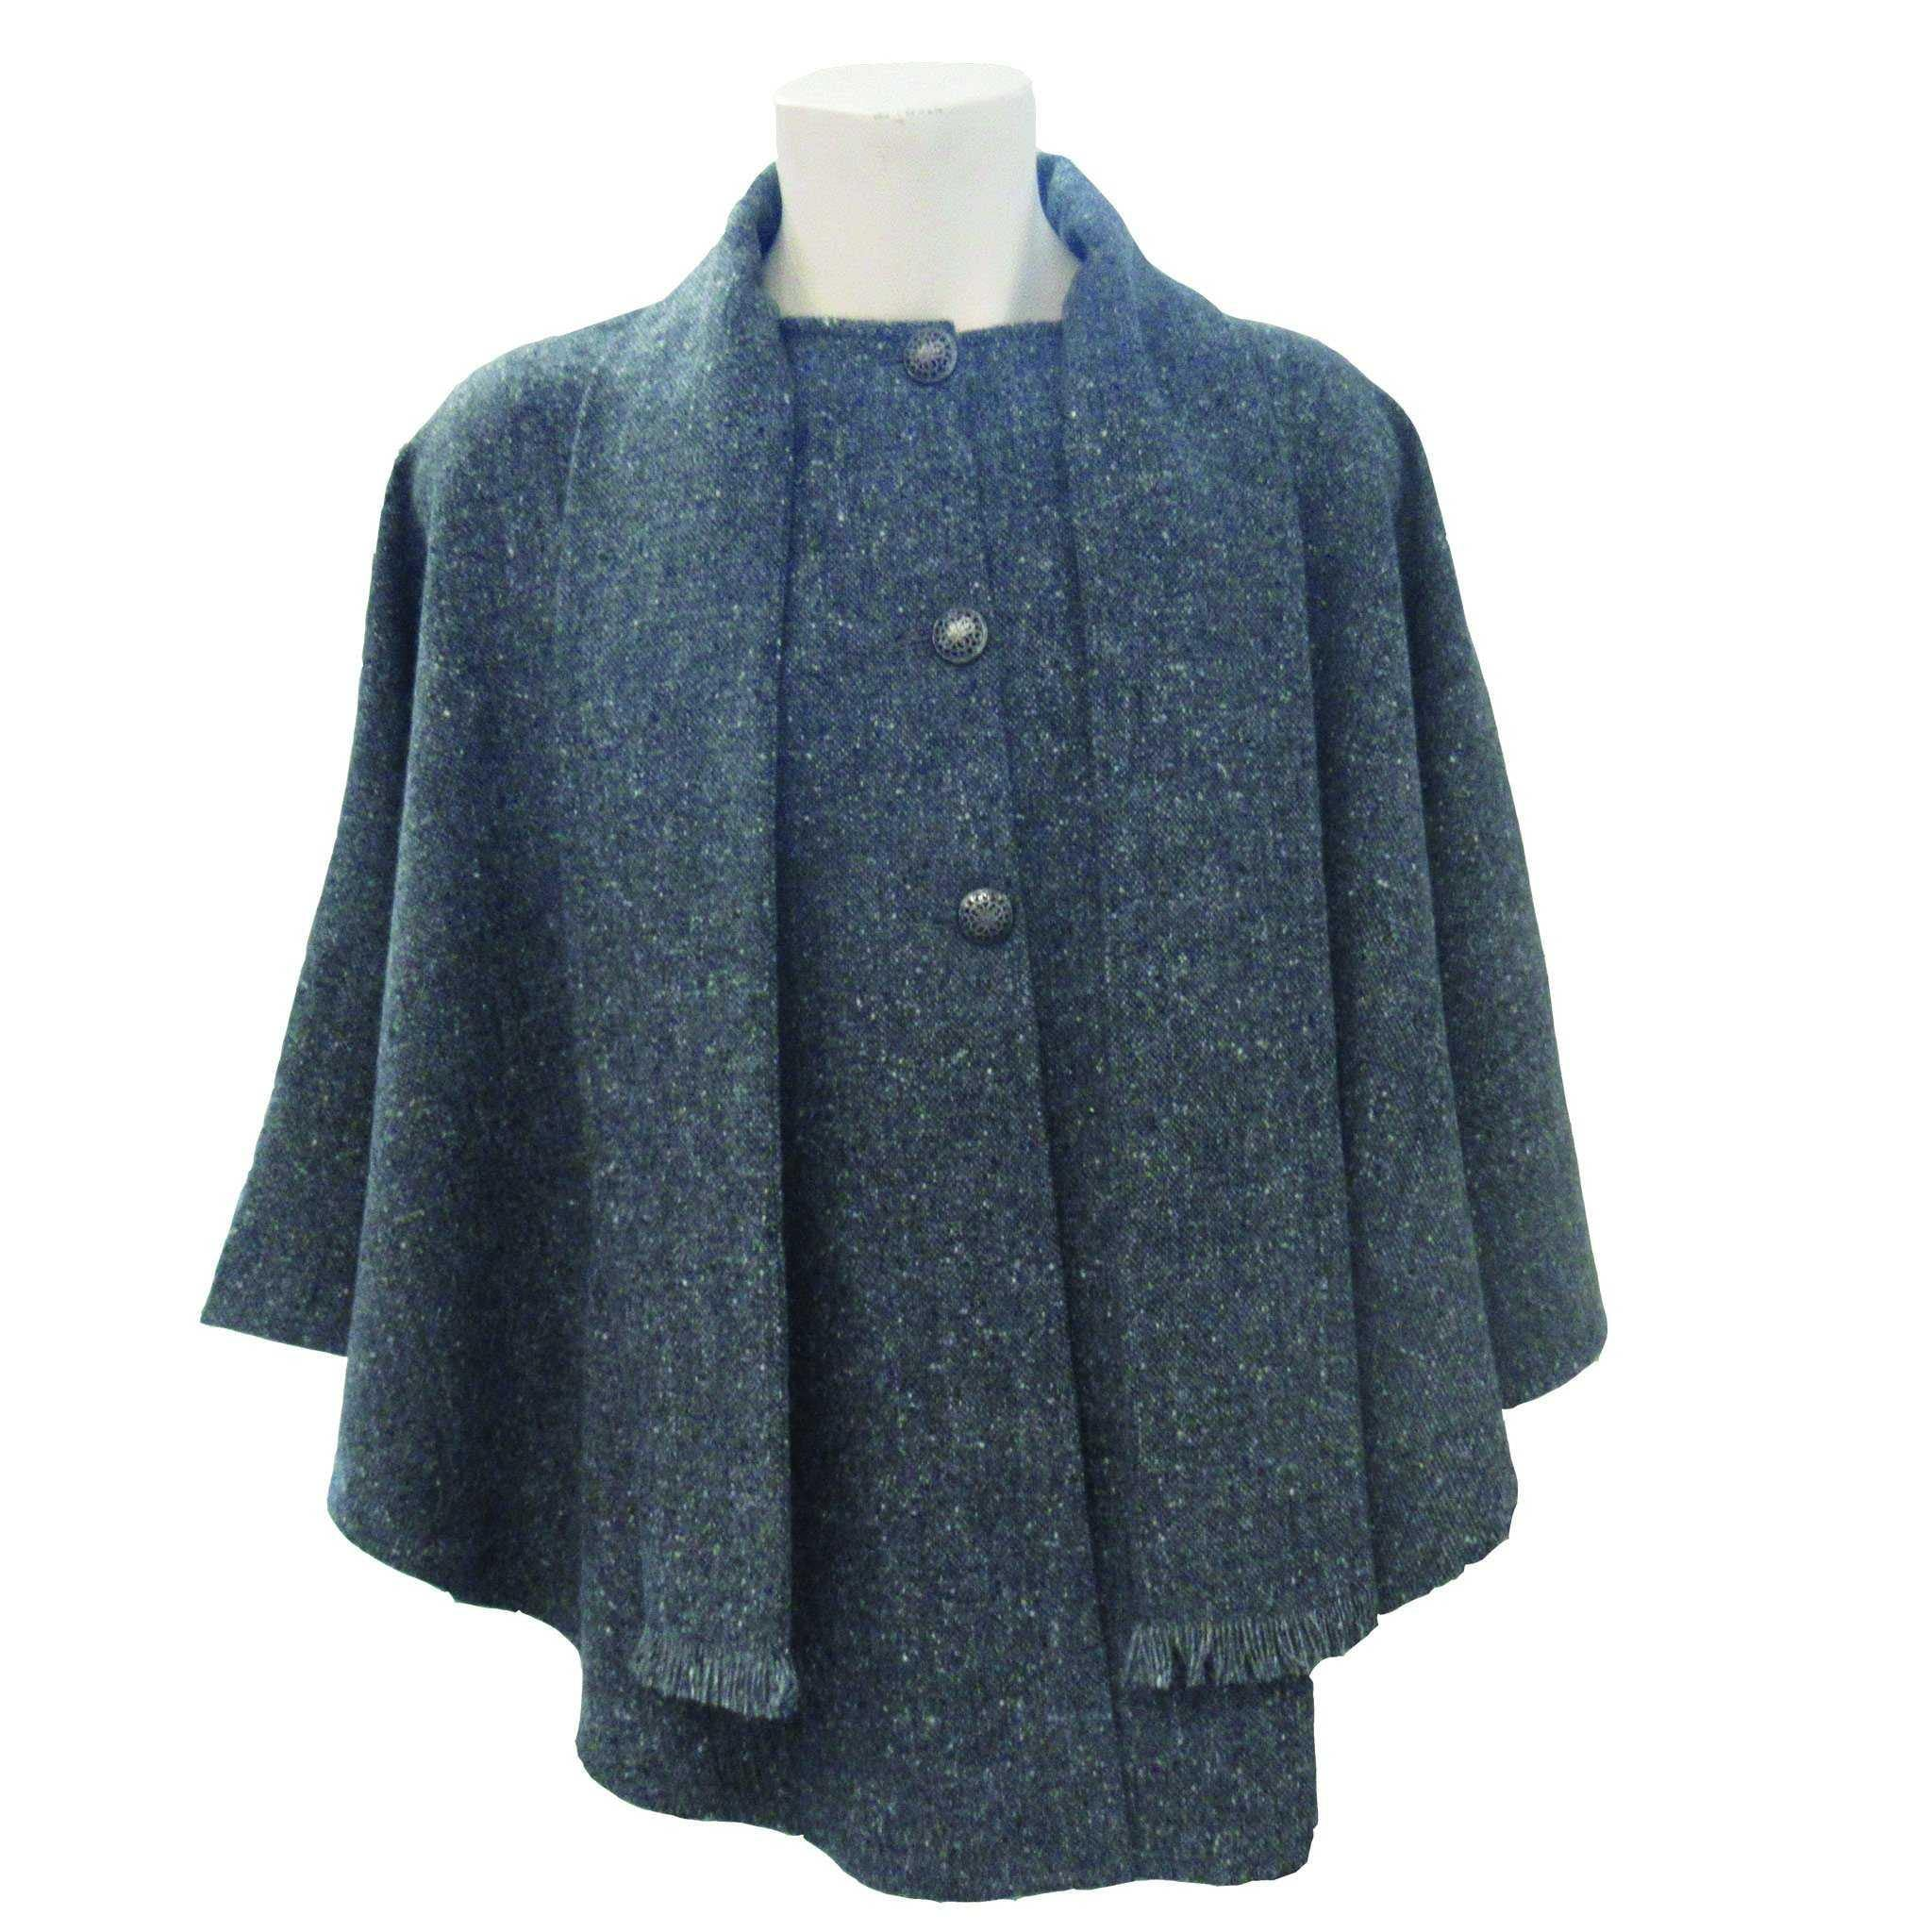 Charcoal Donegal Tweed Cape | Tweed.ie